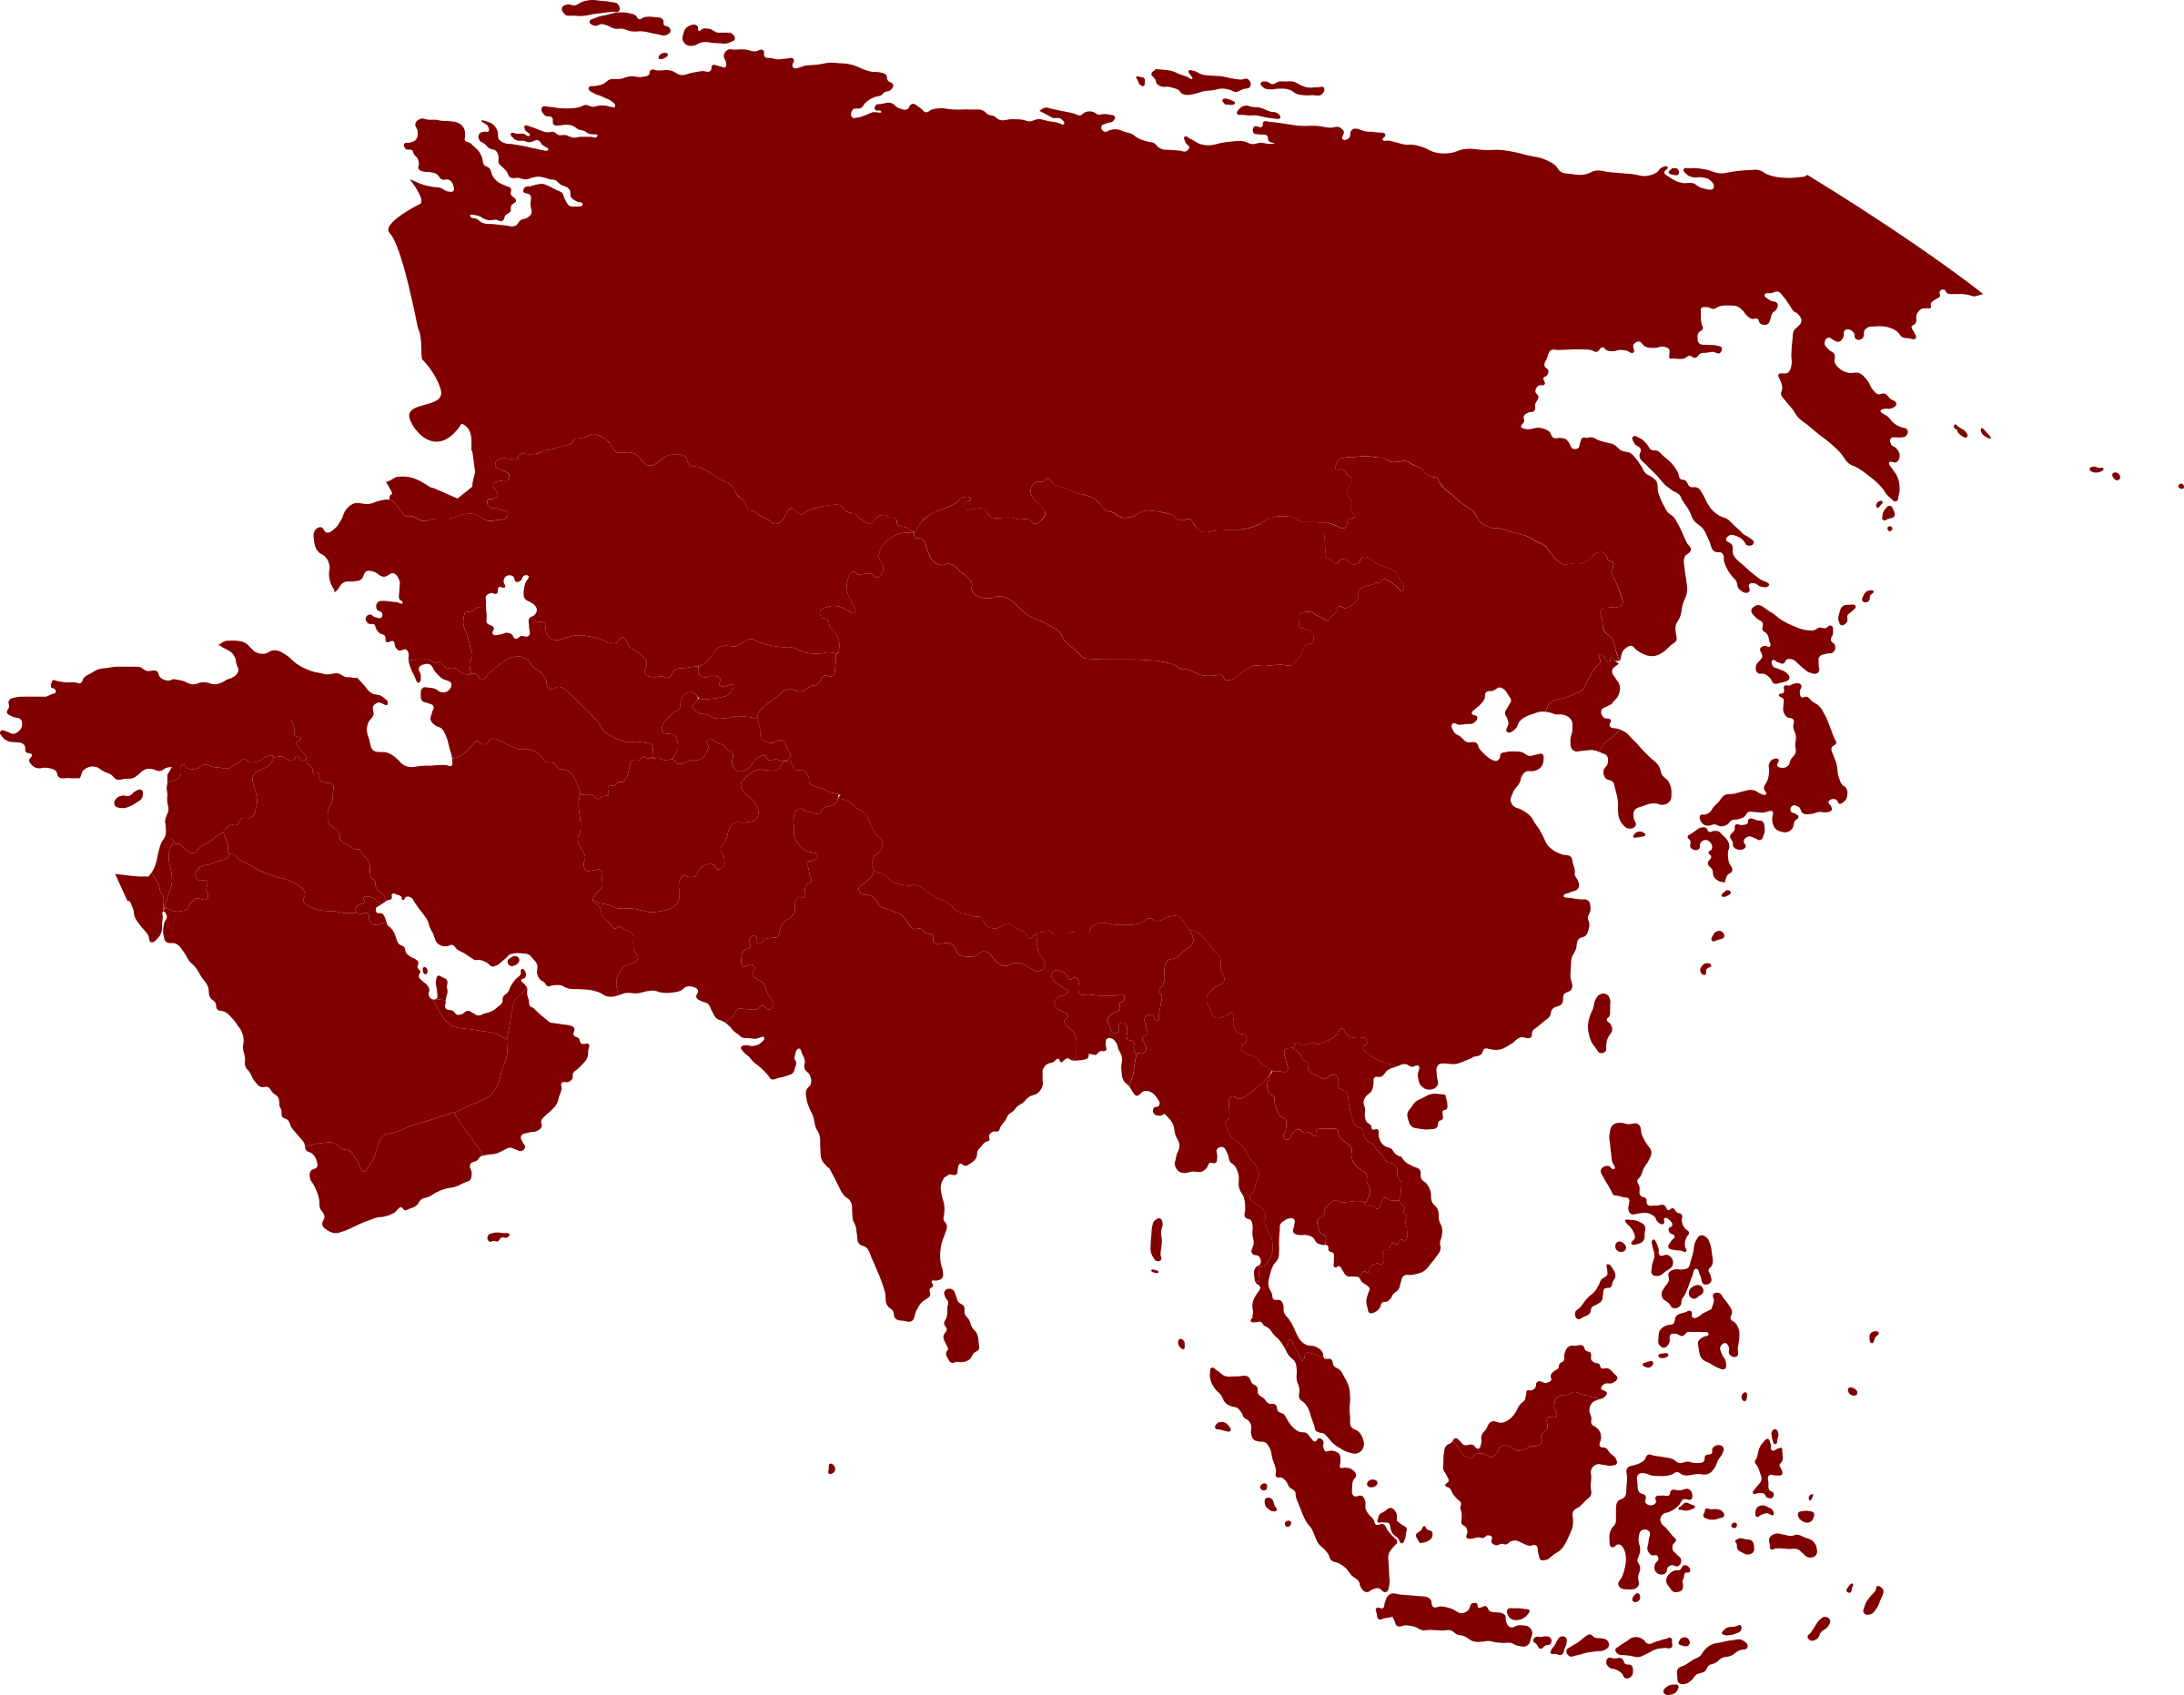 Asian clipart continent asia. Big image png